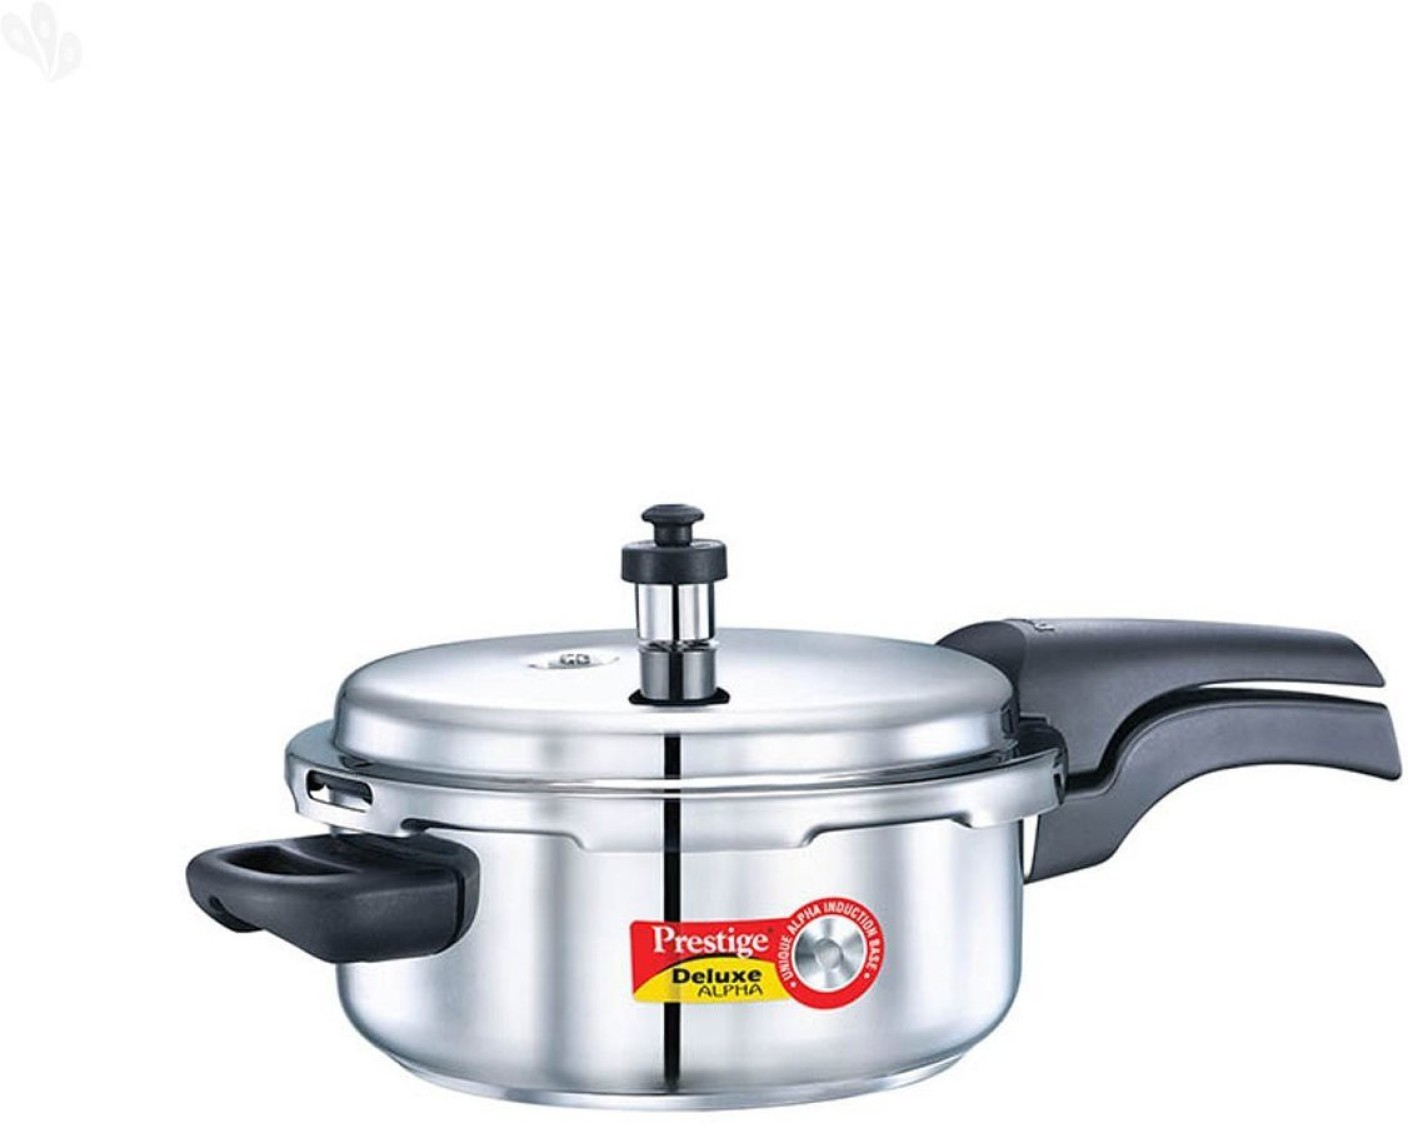 Prestige Kitchen Appliances Prestige Deluxe Alpha 3 L Pressure Cooker Price In India Buy